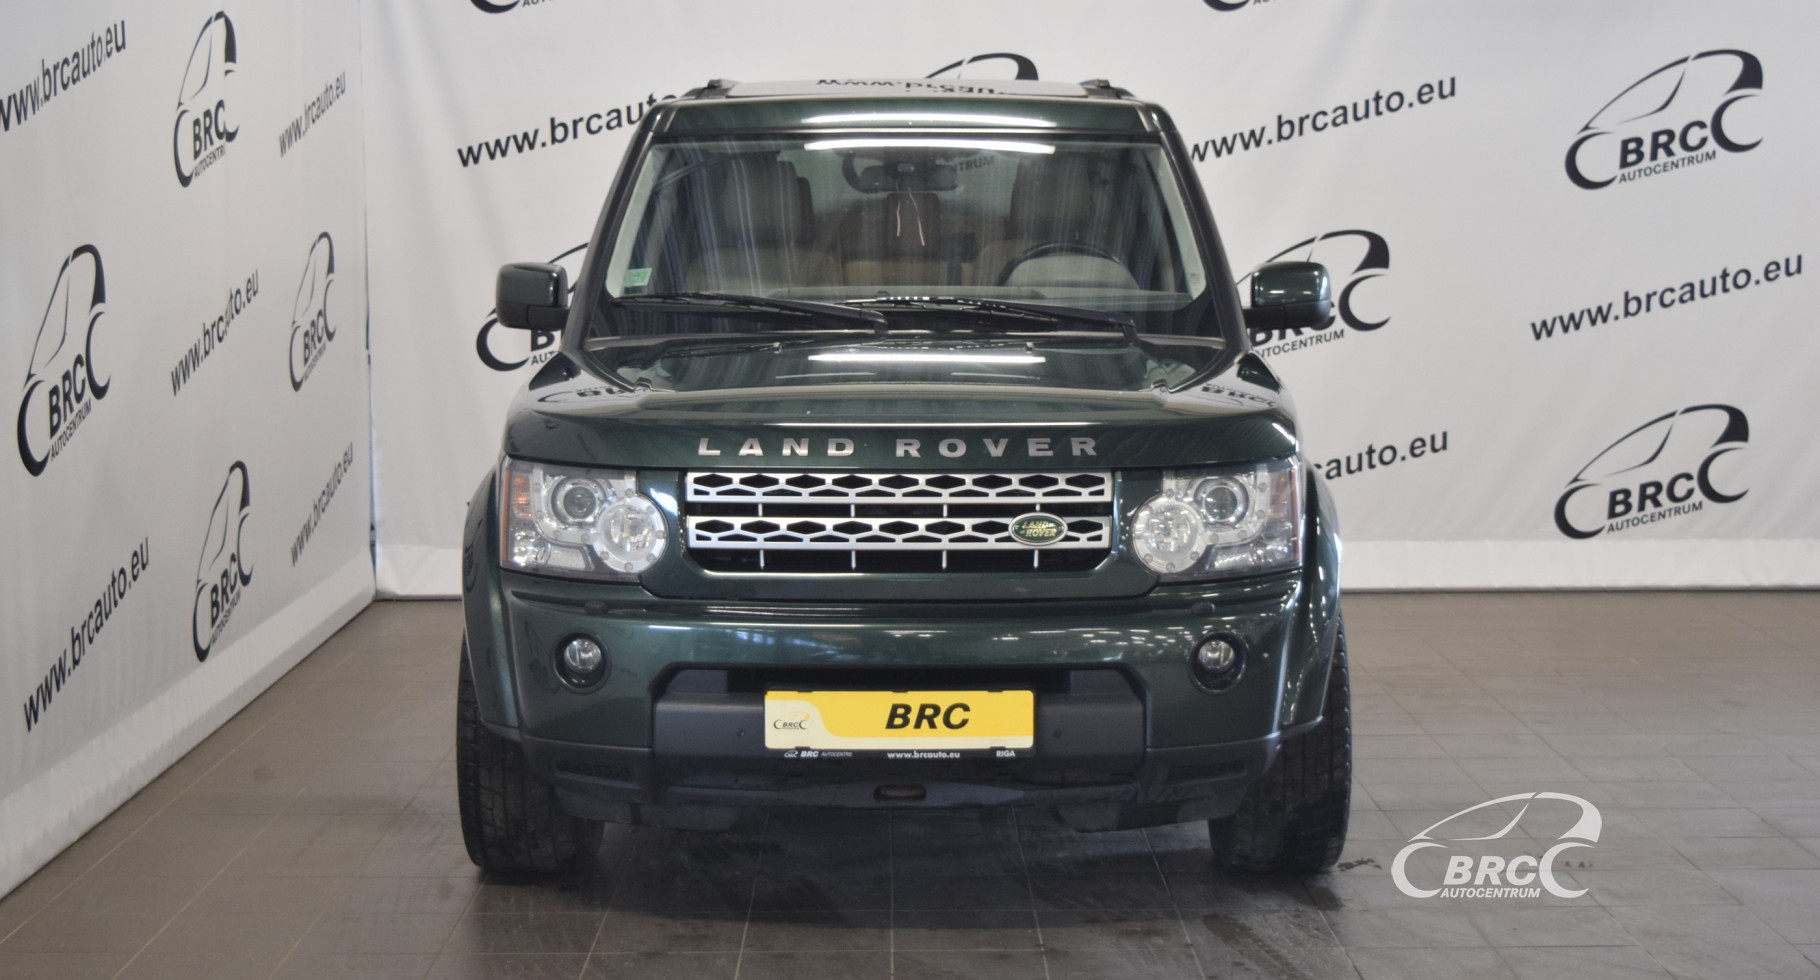 Land-Rover Discovery 4 7 seats